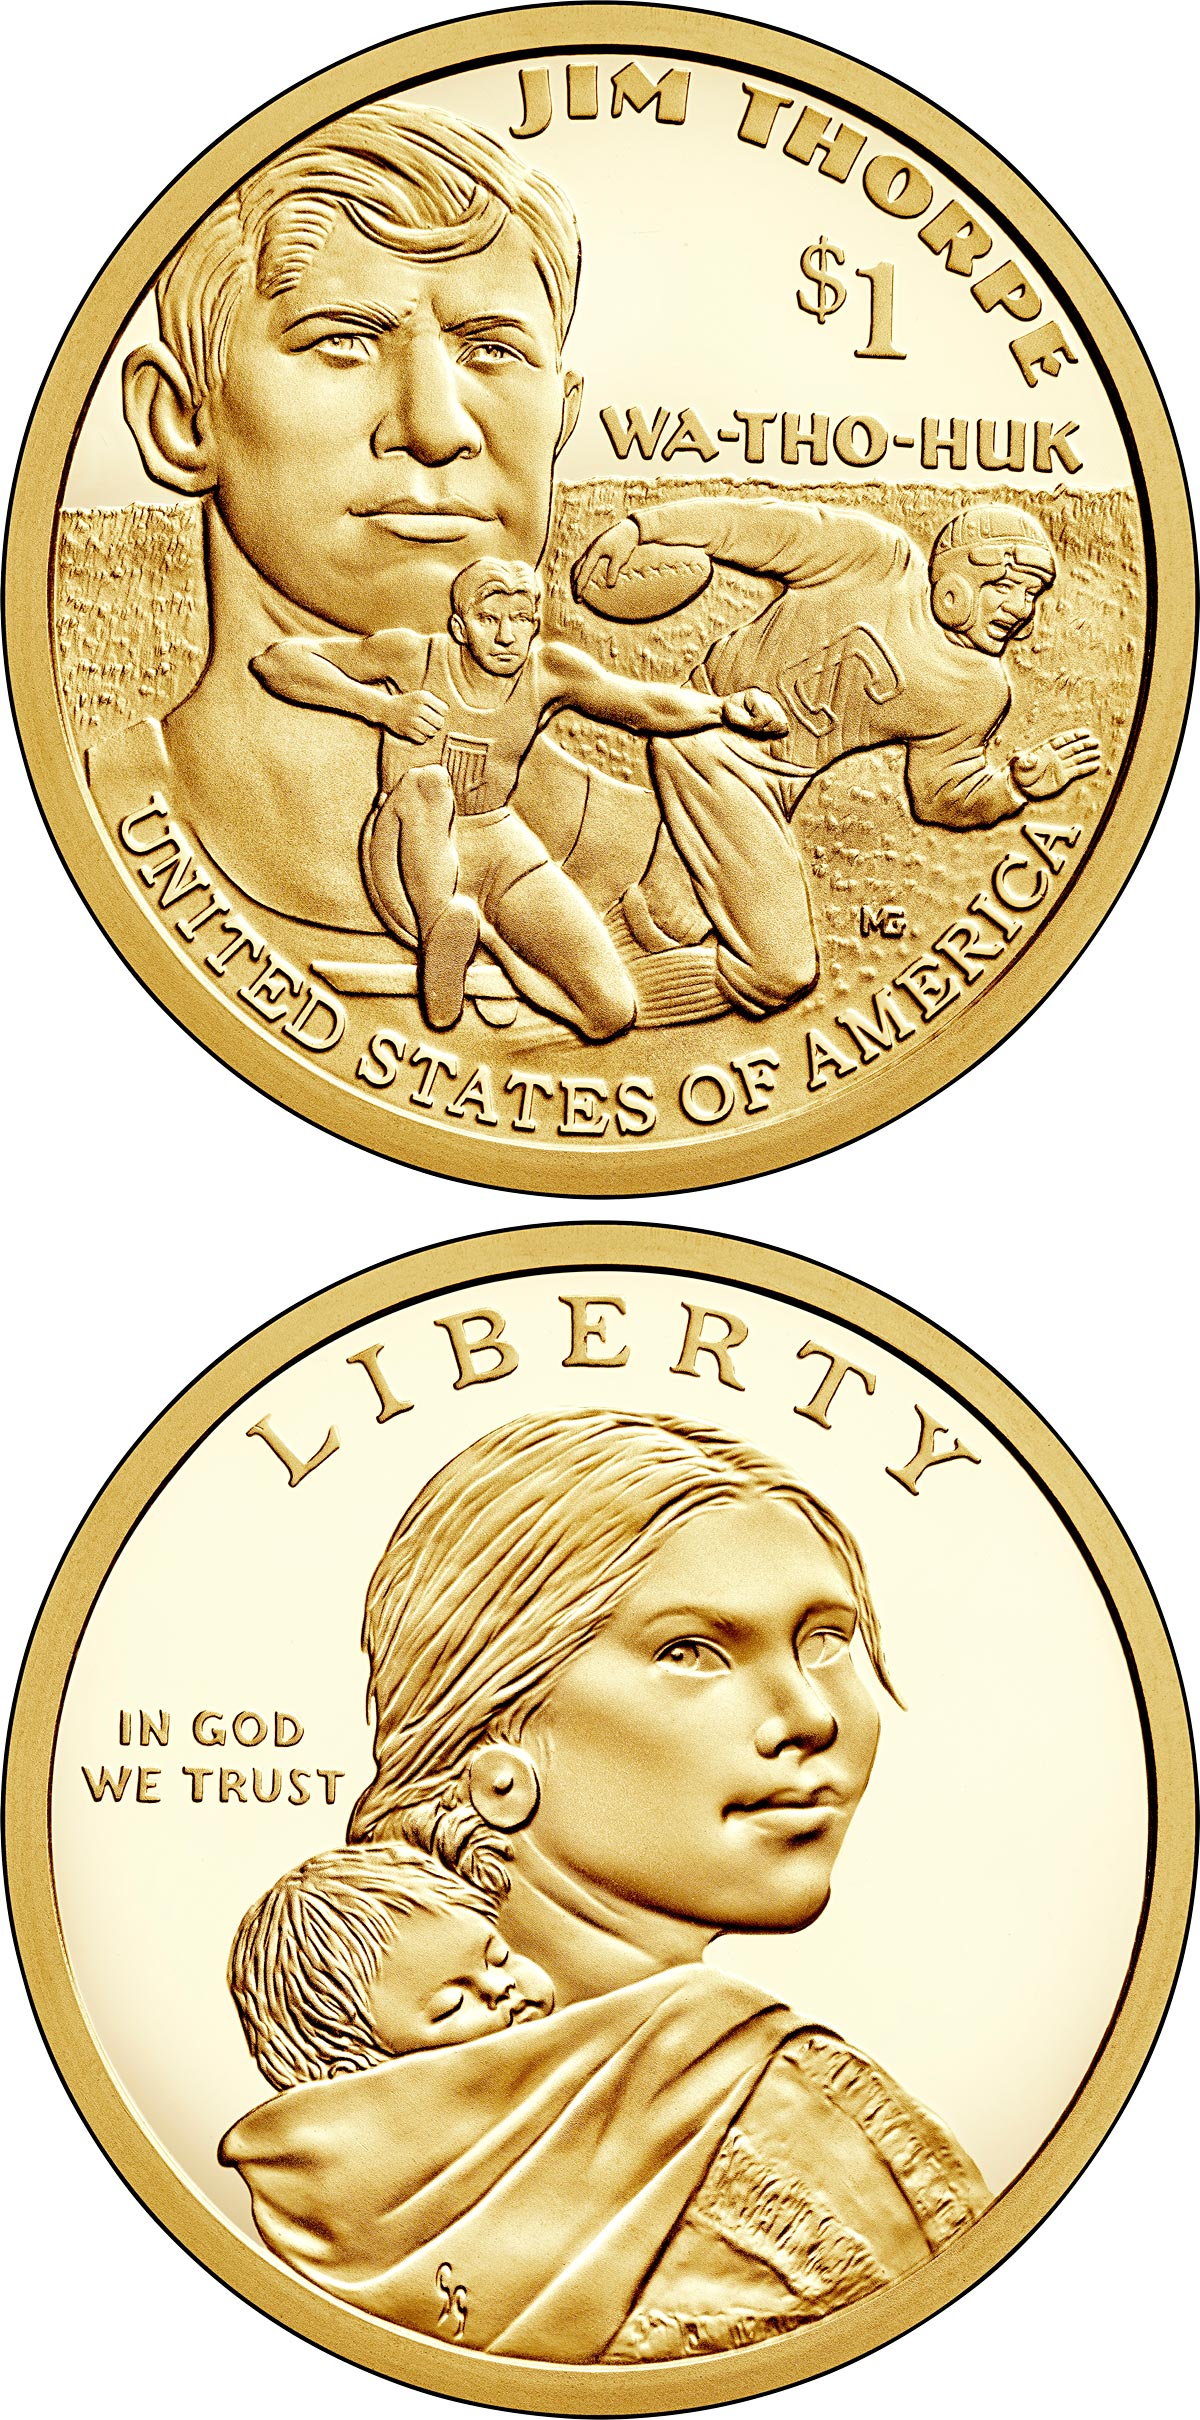 an overview of the achievements by jim thorpe native american olympic sportist Jim thorpe: the greatest athlete a century later  the jim thorpe native  american games will take place in oklahoma  ticking off thorpe's  achievements: gold medals in the decathlon and  to the us olympic trials in  new york and qualified for the games in the long jump, high jump and  pentathlon.